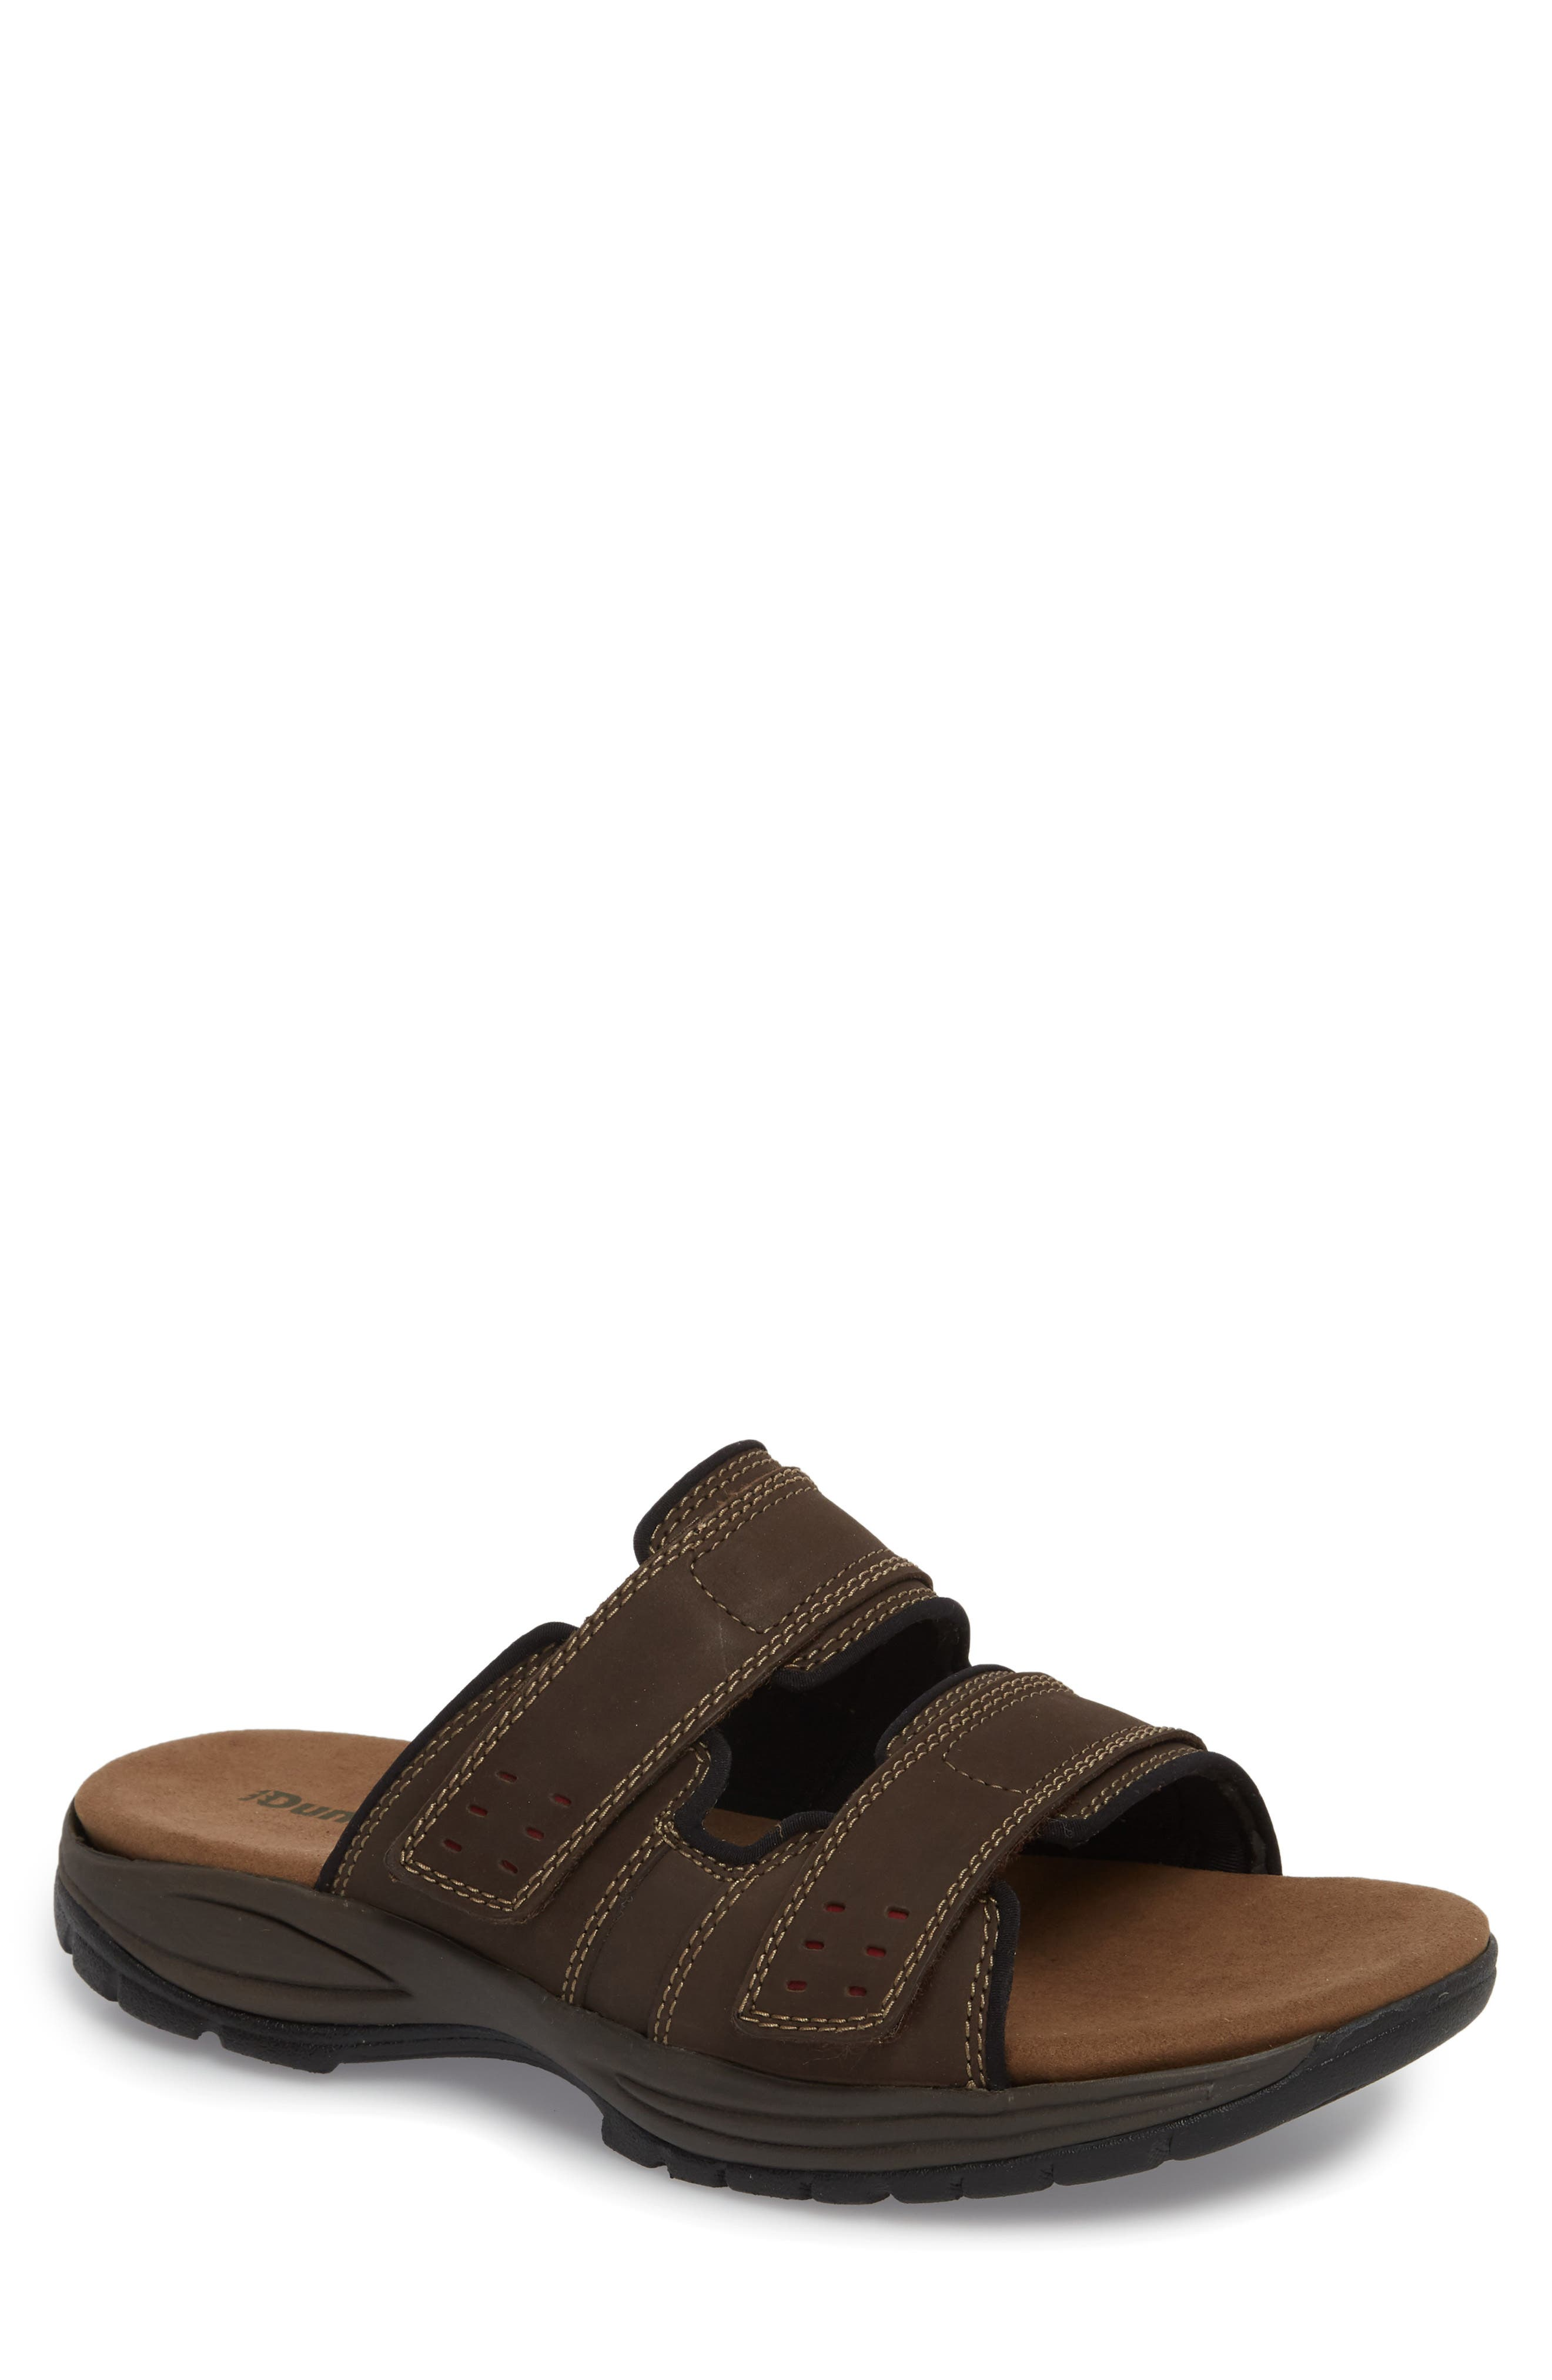 Newport Slide Sandal,                         Main,                         color, Dark Brown Leather